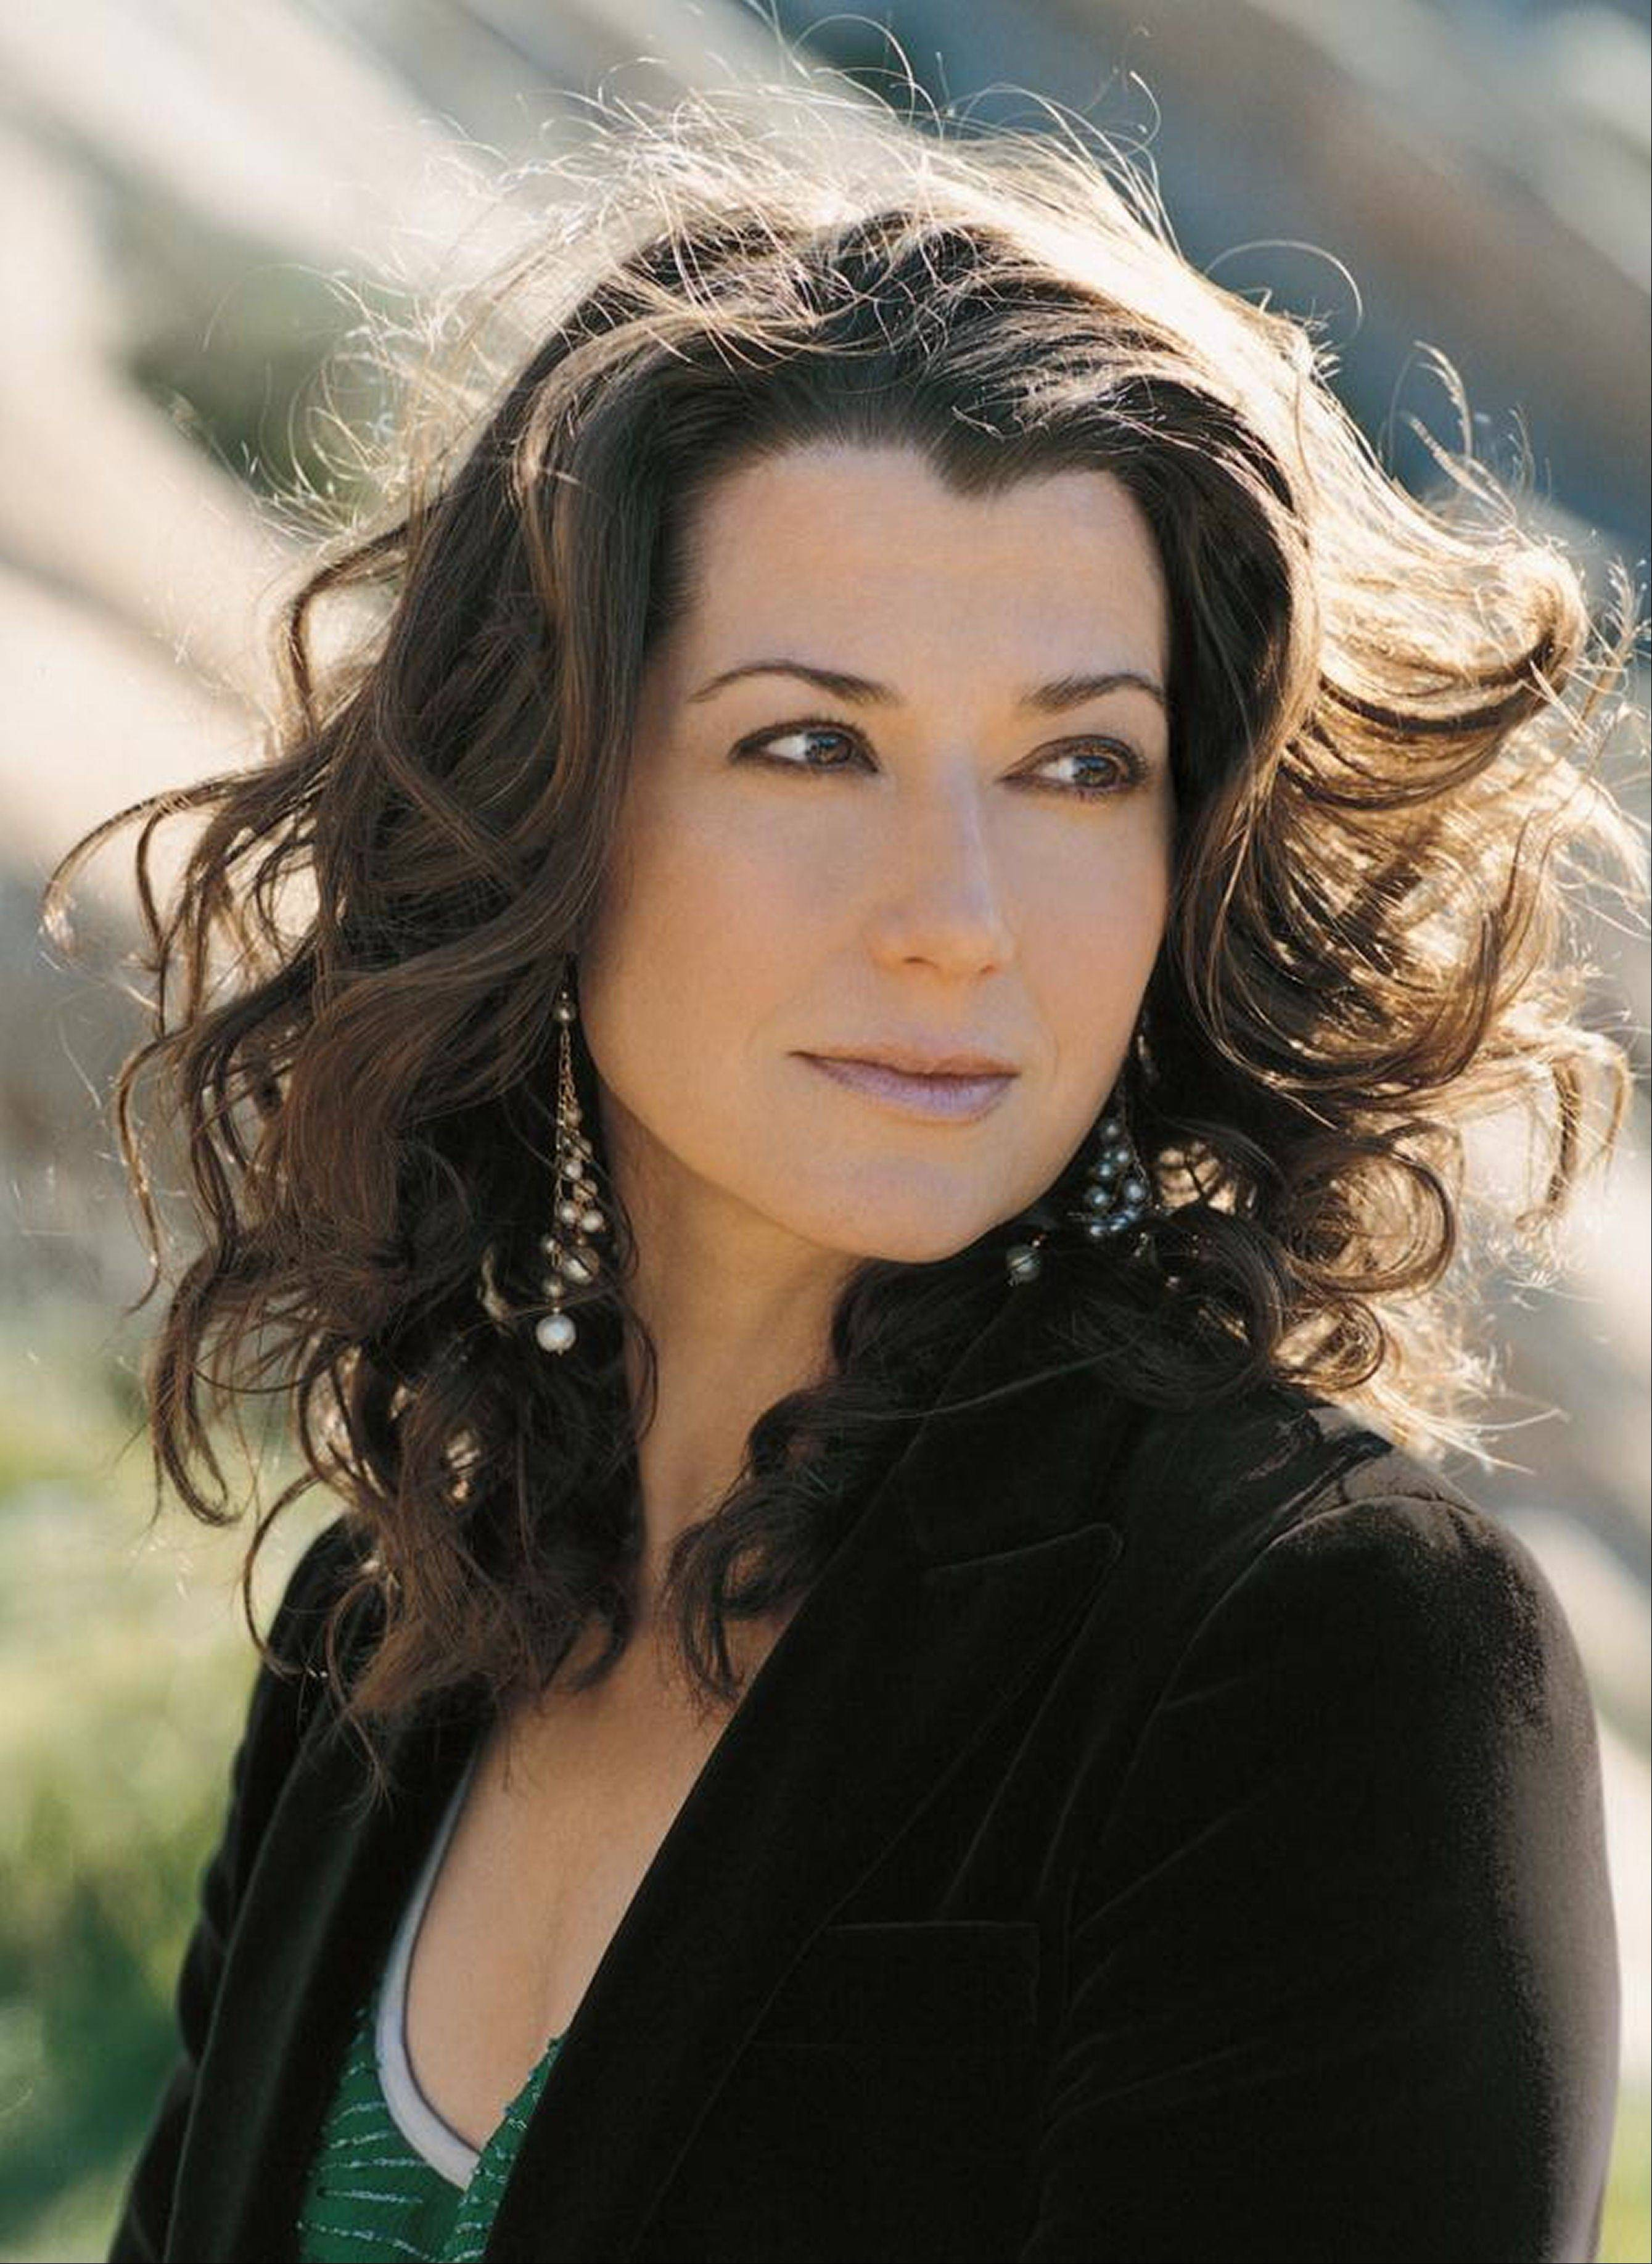 Amy Grant will perform at the Raue Center for the Arts in Crystal Lake on Saturday, Oct. 6.